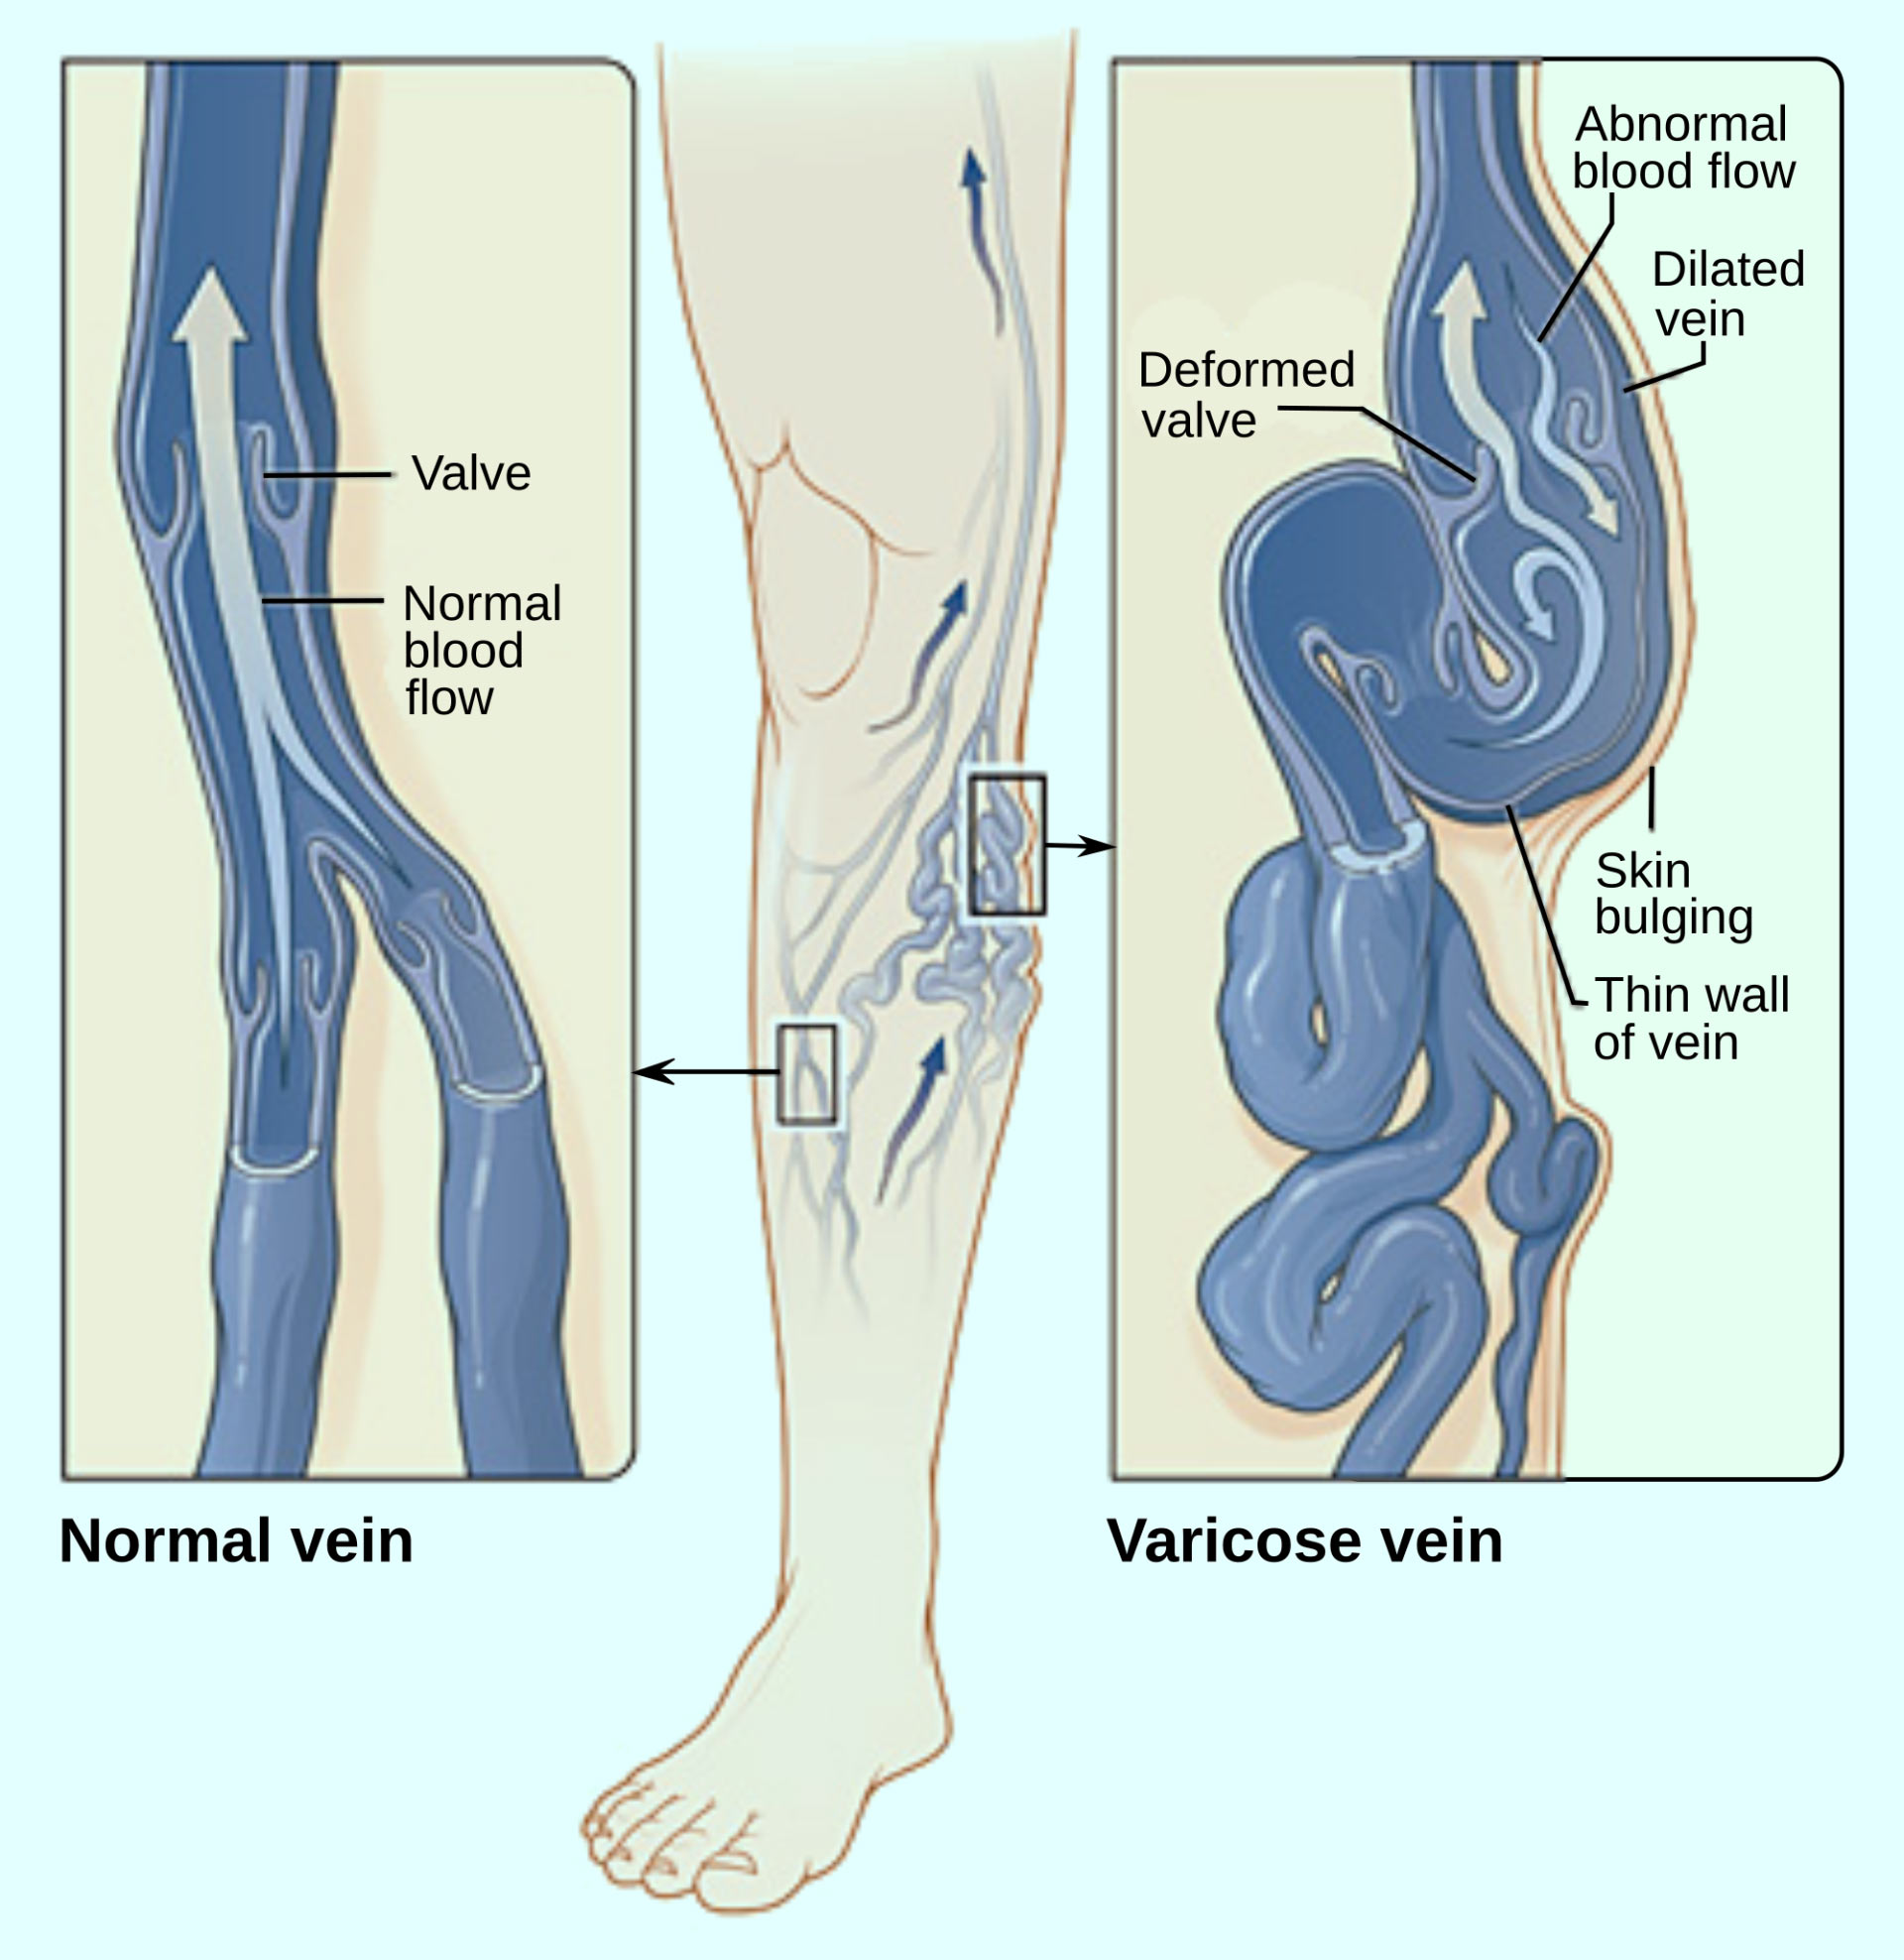 Varicose Veins Linked To Increased Risk Of Deep Venous Thrombosis